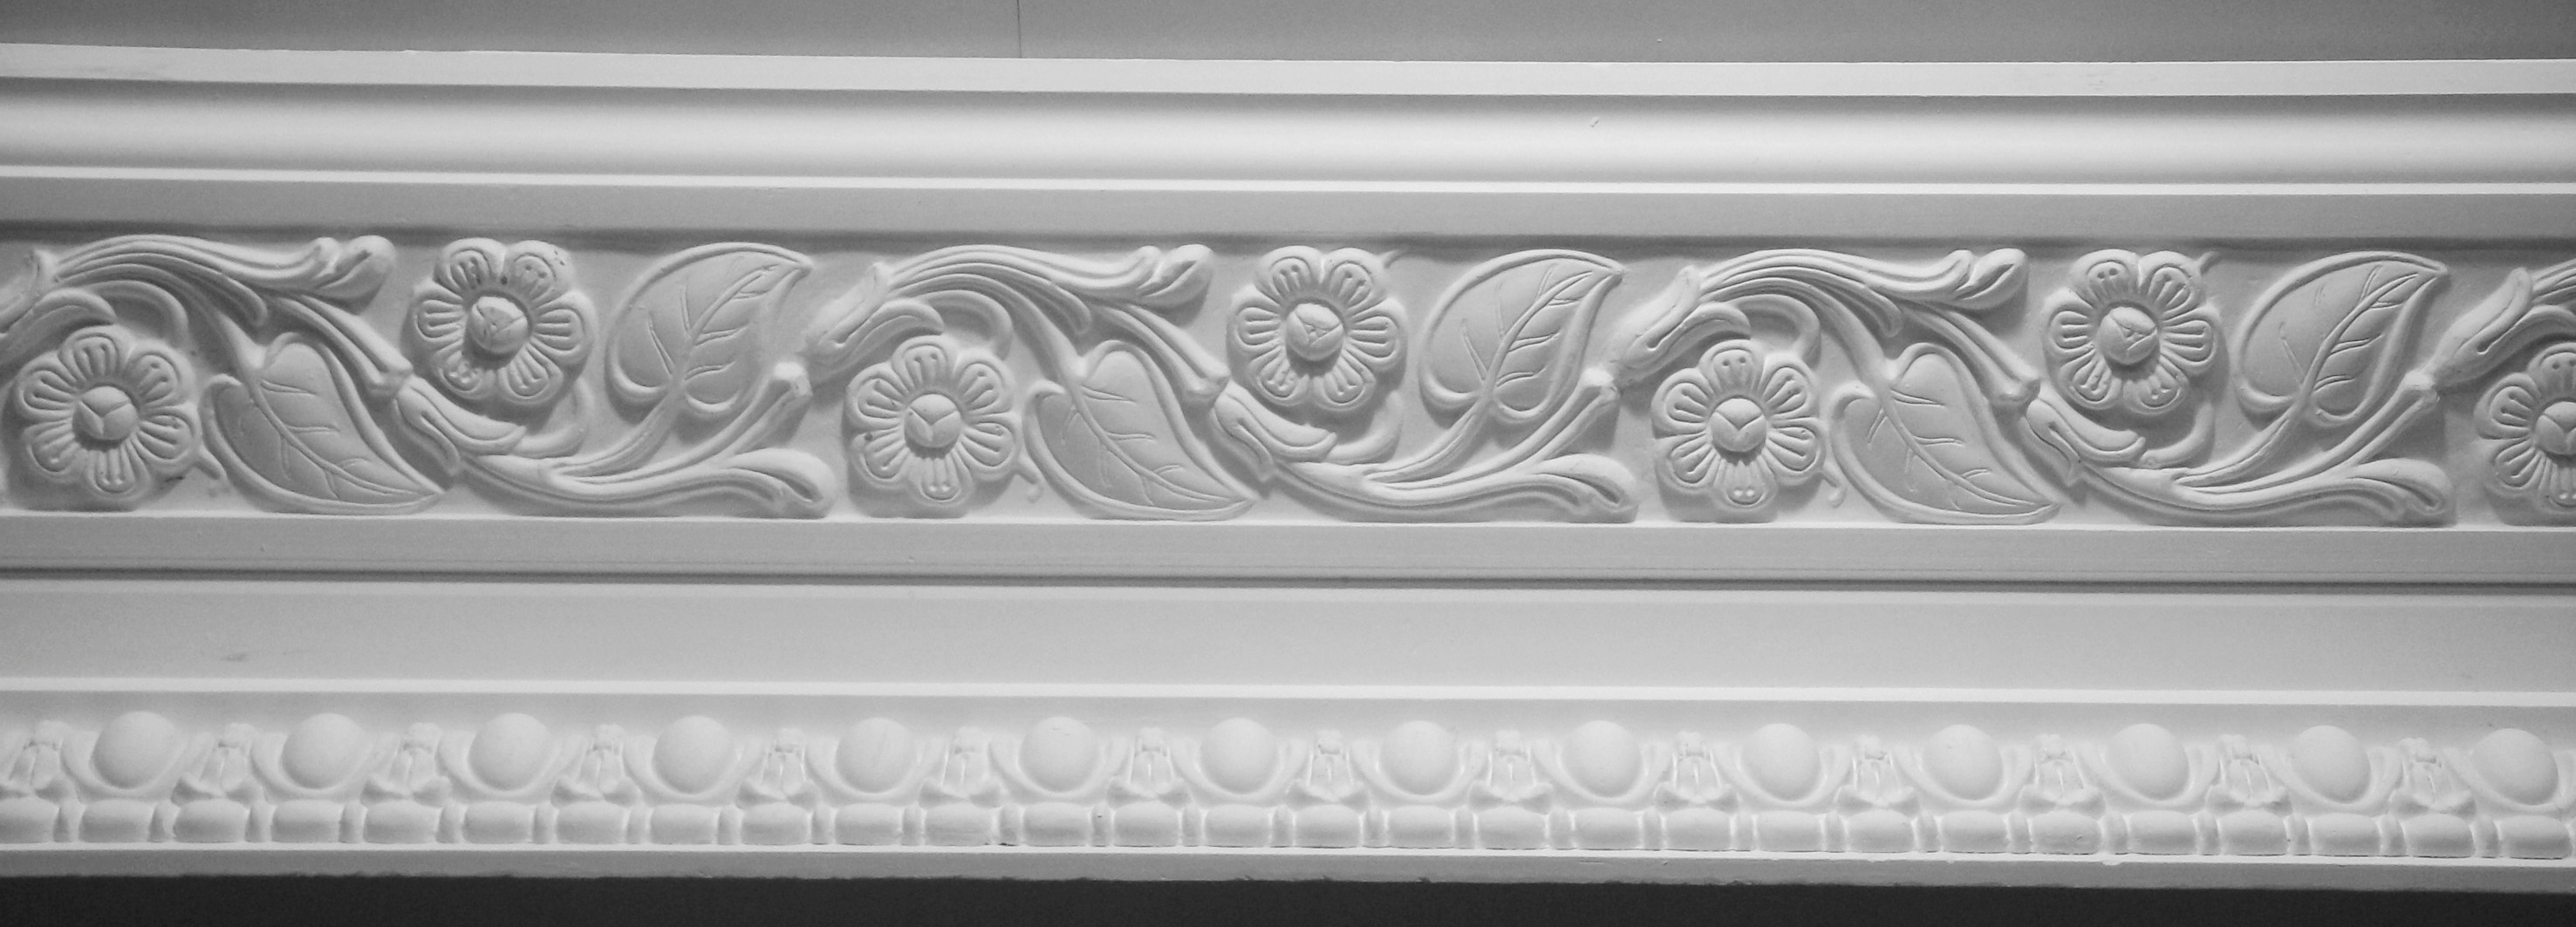 Arts & Crafts Cornices (1910-1920)